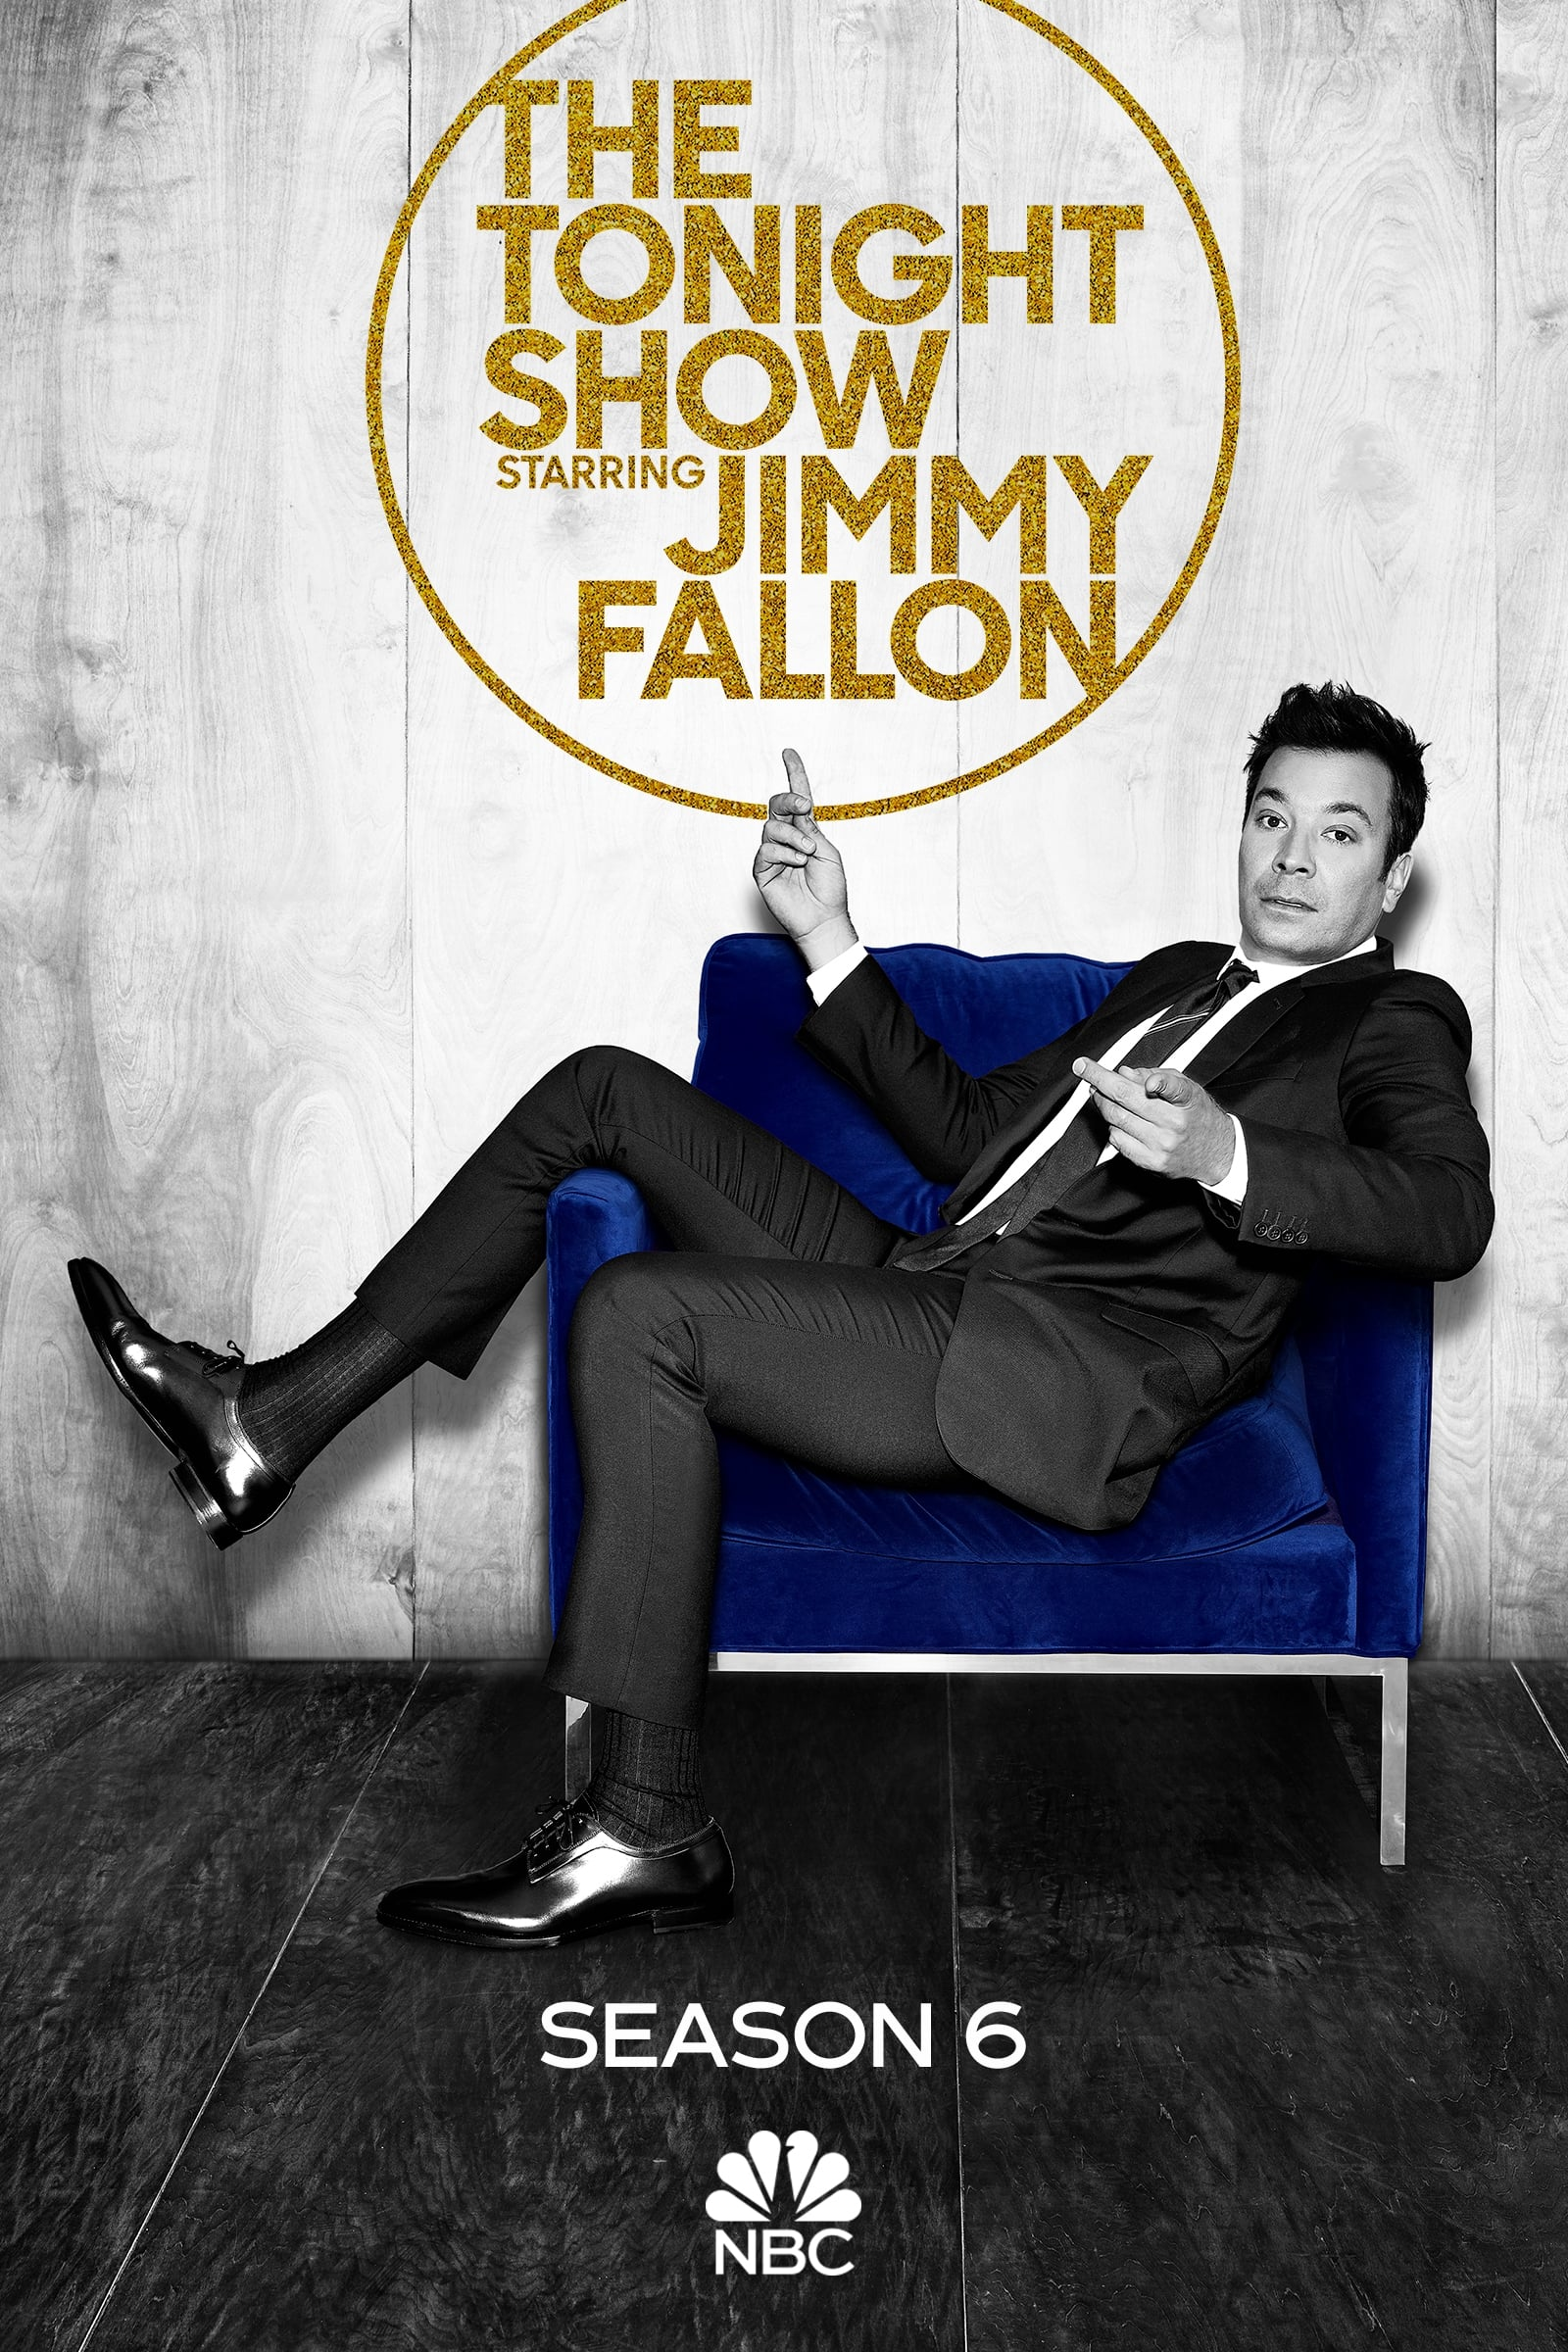 The Tonight Show Starring Jimmy Fallon Season 6